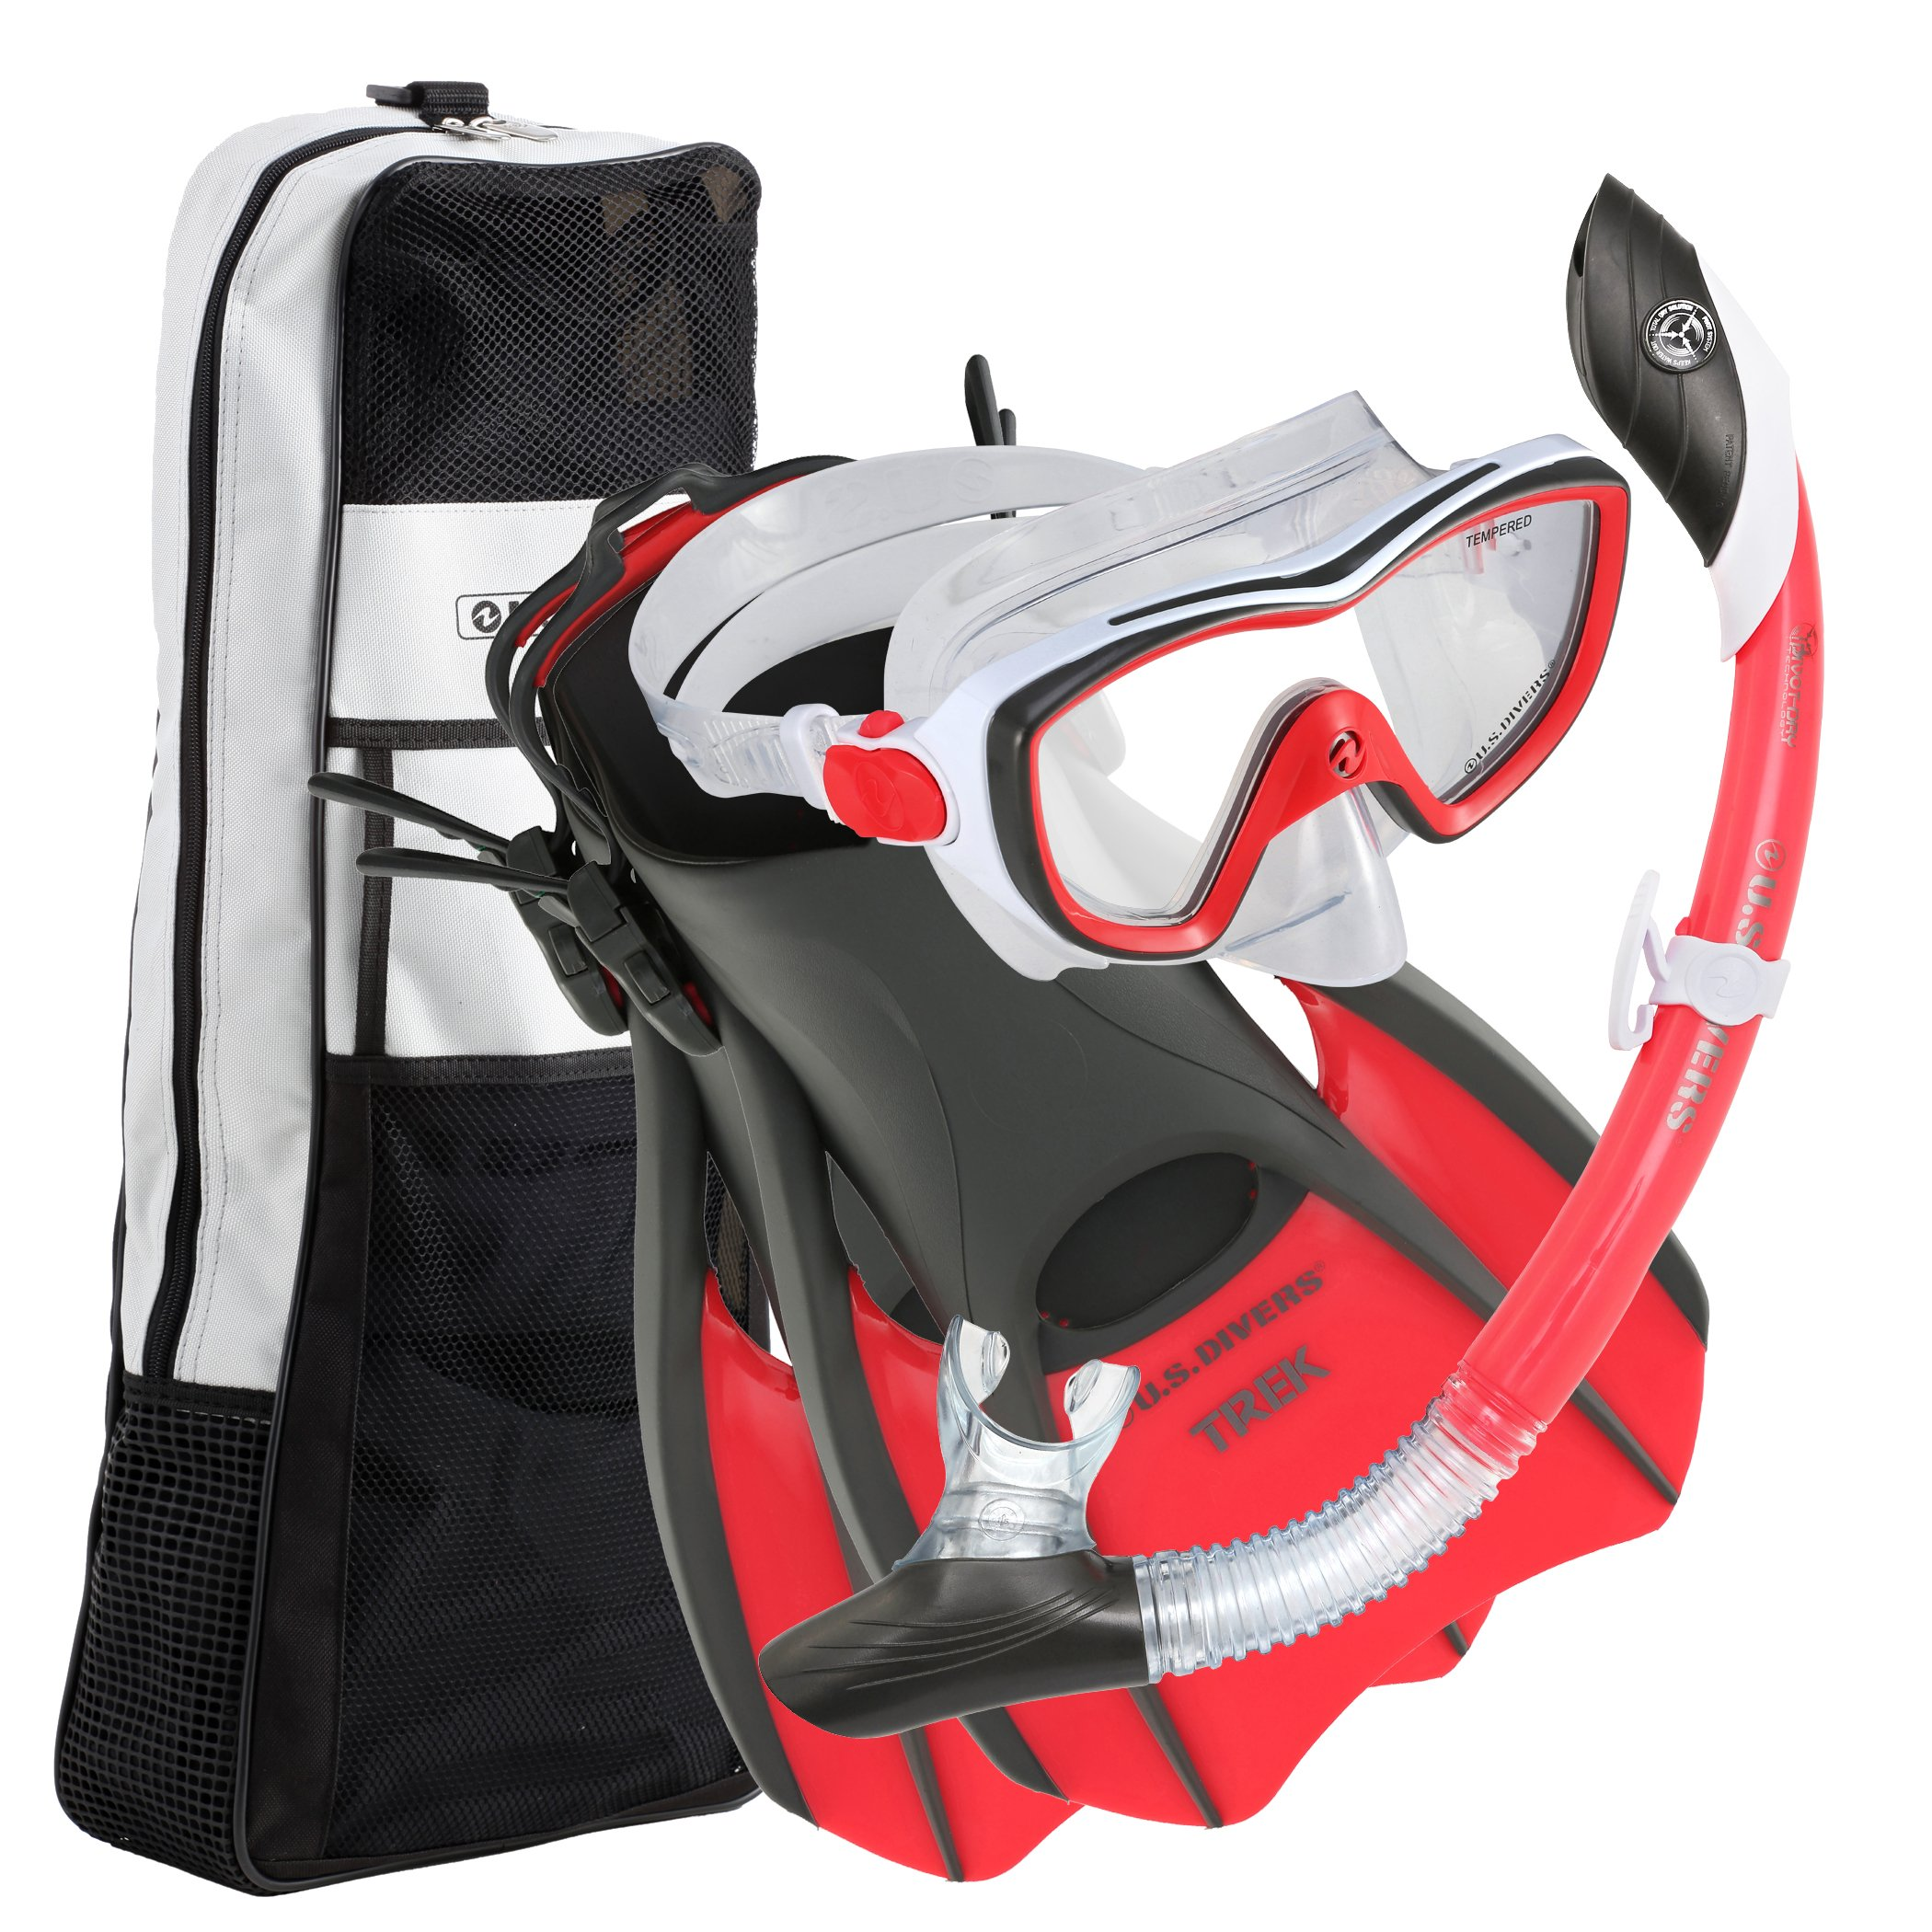 U.S. Divers Diva Women Snorkel Set, Ladies Silicone Mask, Trek Travel Fins, Dry Top Snorkel + Snorkeling Gear Bag - Red/White - Small by U.S. Divers